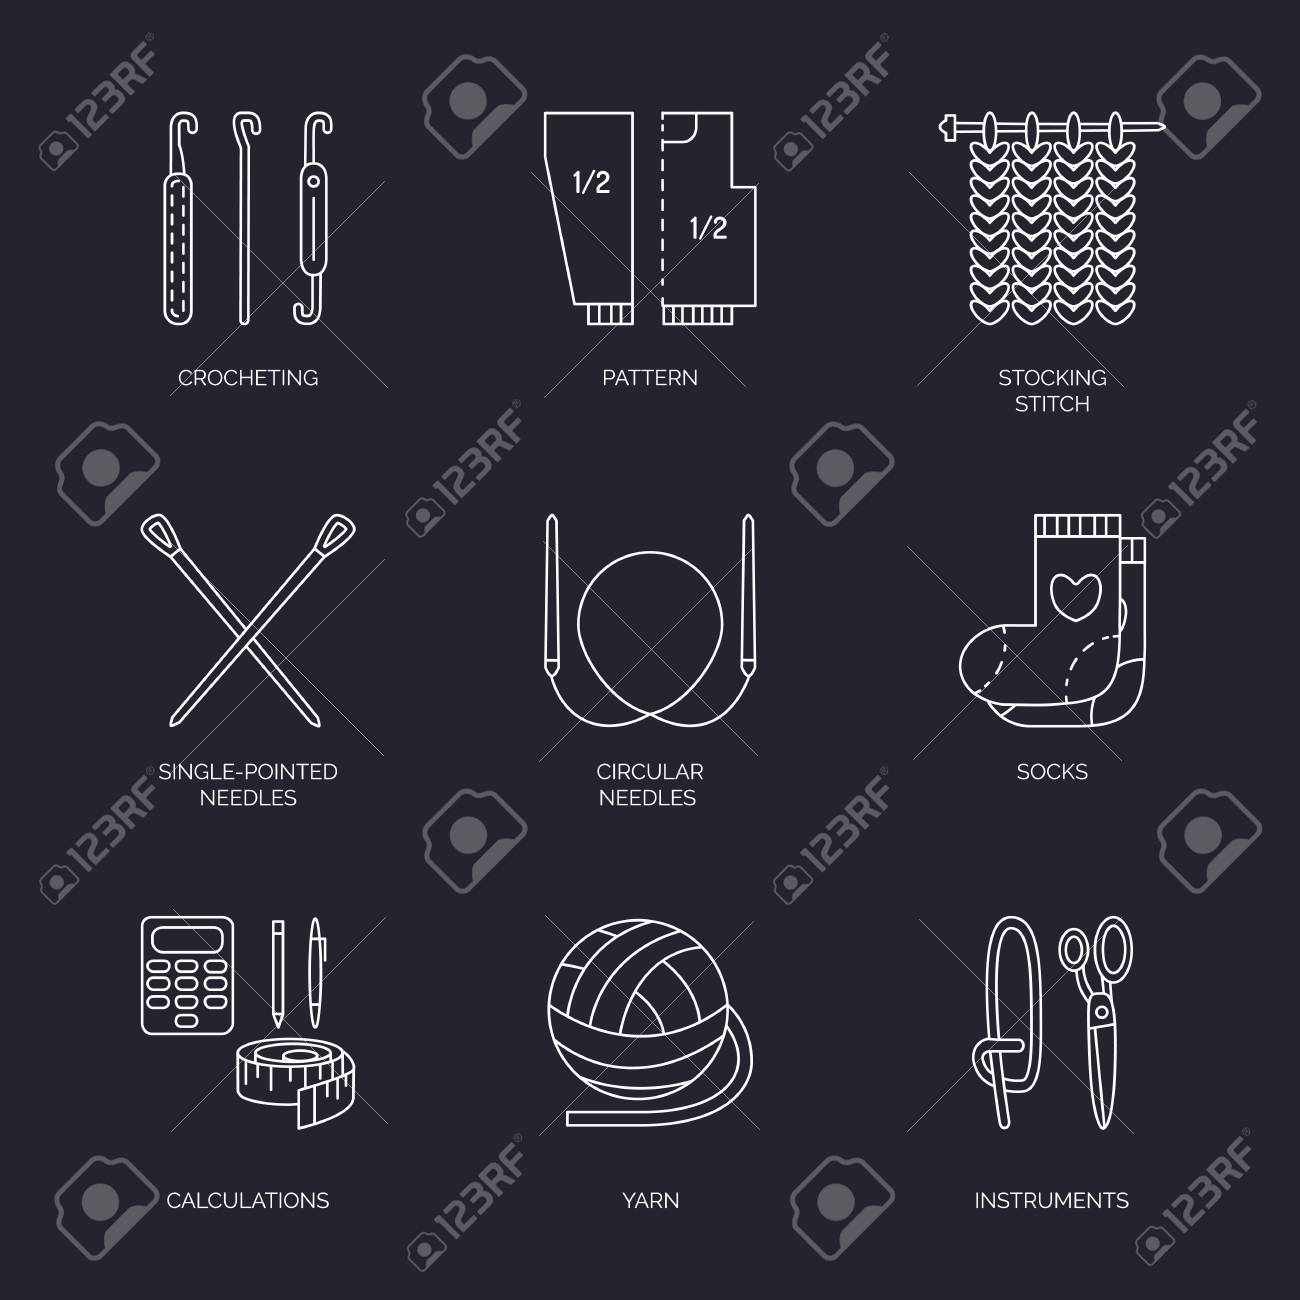 Vector Line Icons Collection Of Knitting And Crochet Hand Made Royalty Free Cliparts Vectors And Stock Illustration Image 66481421